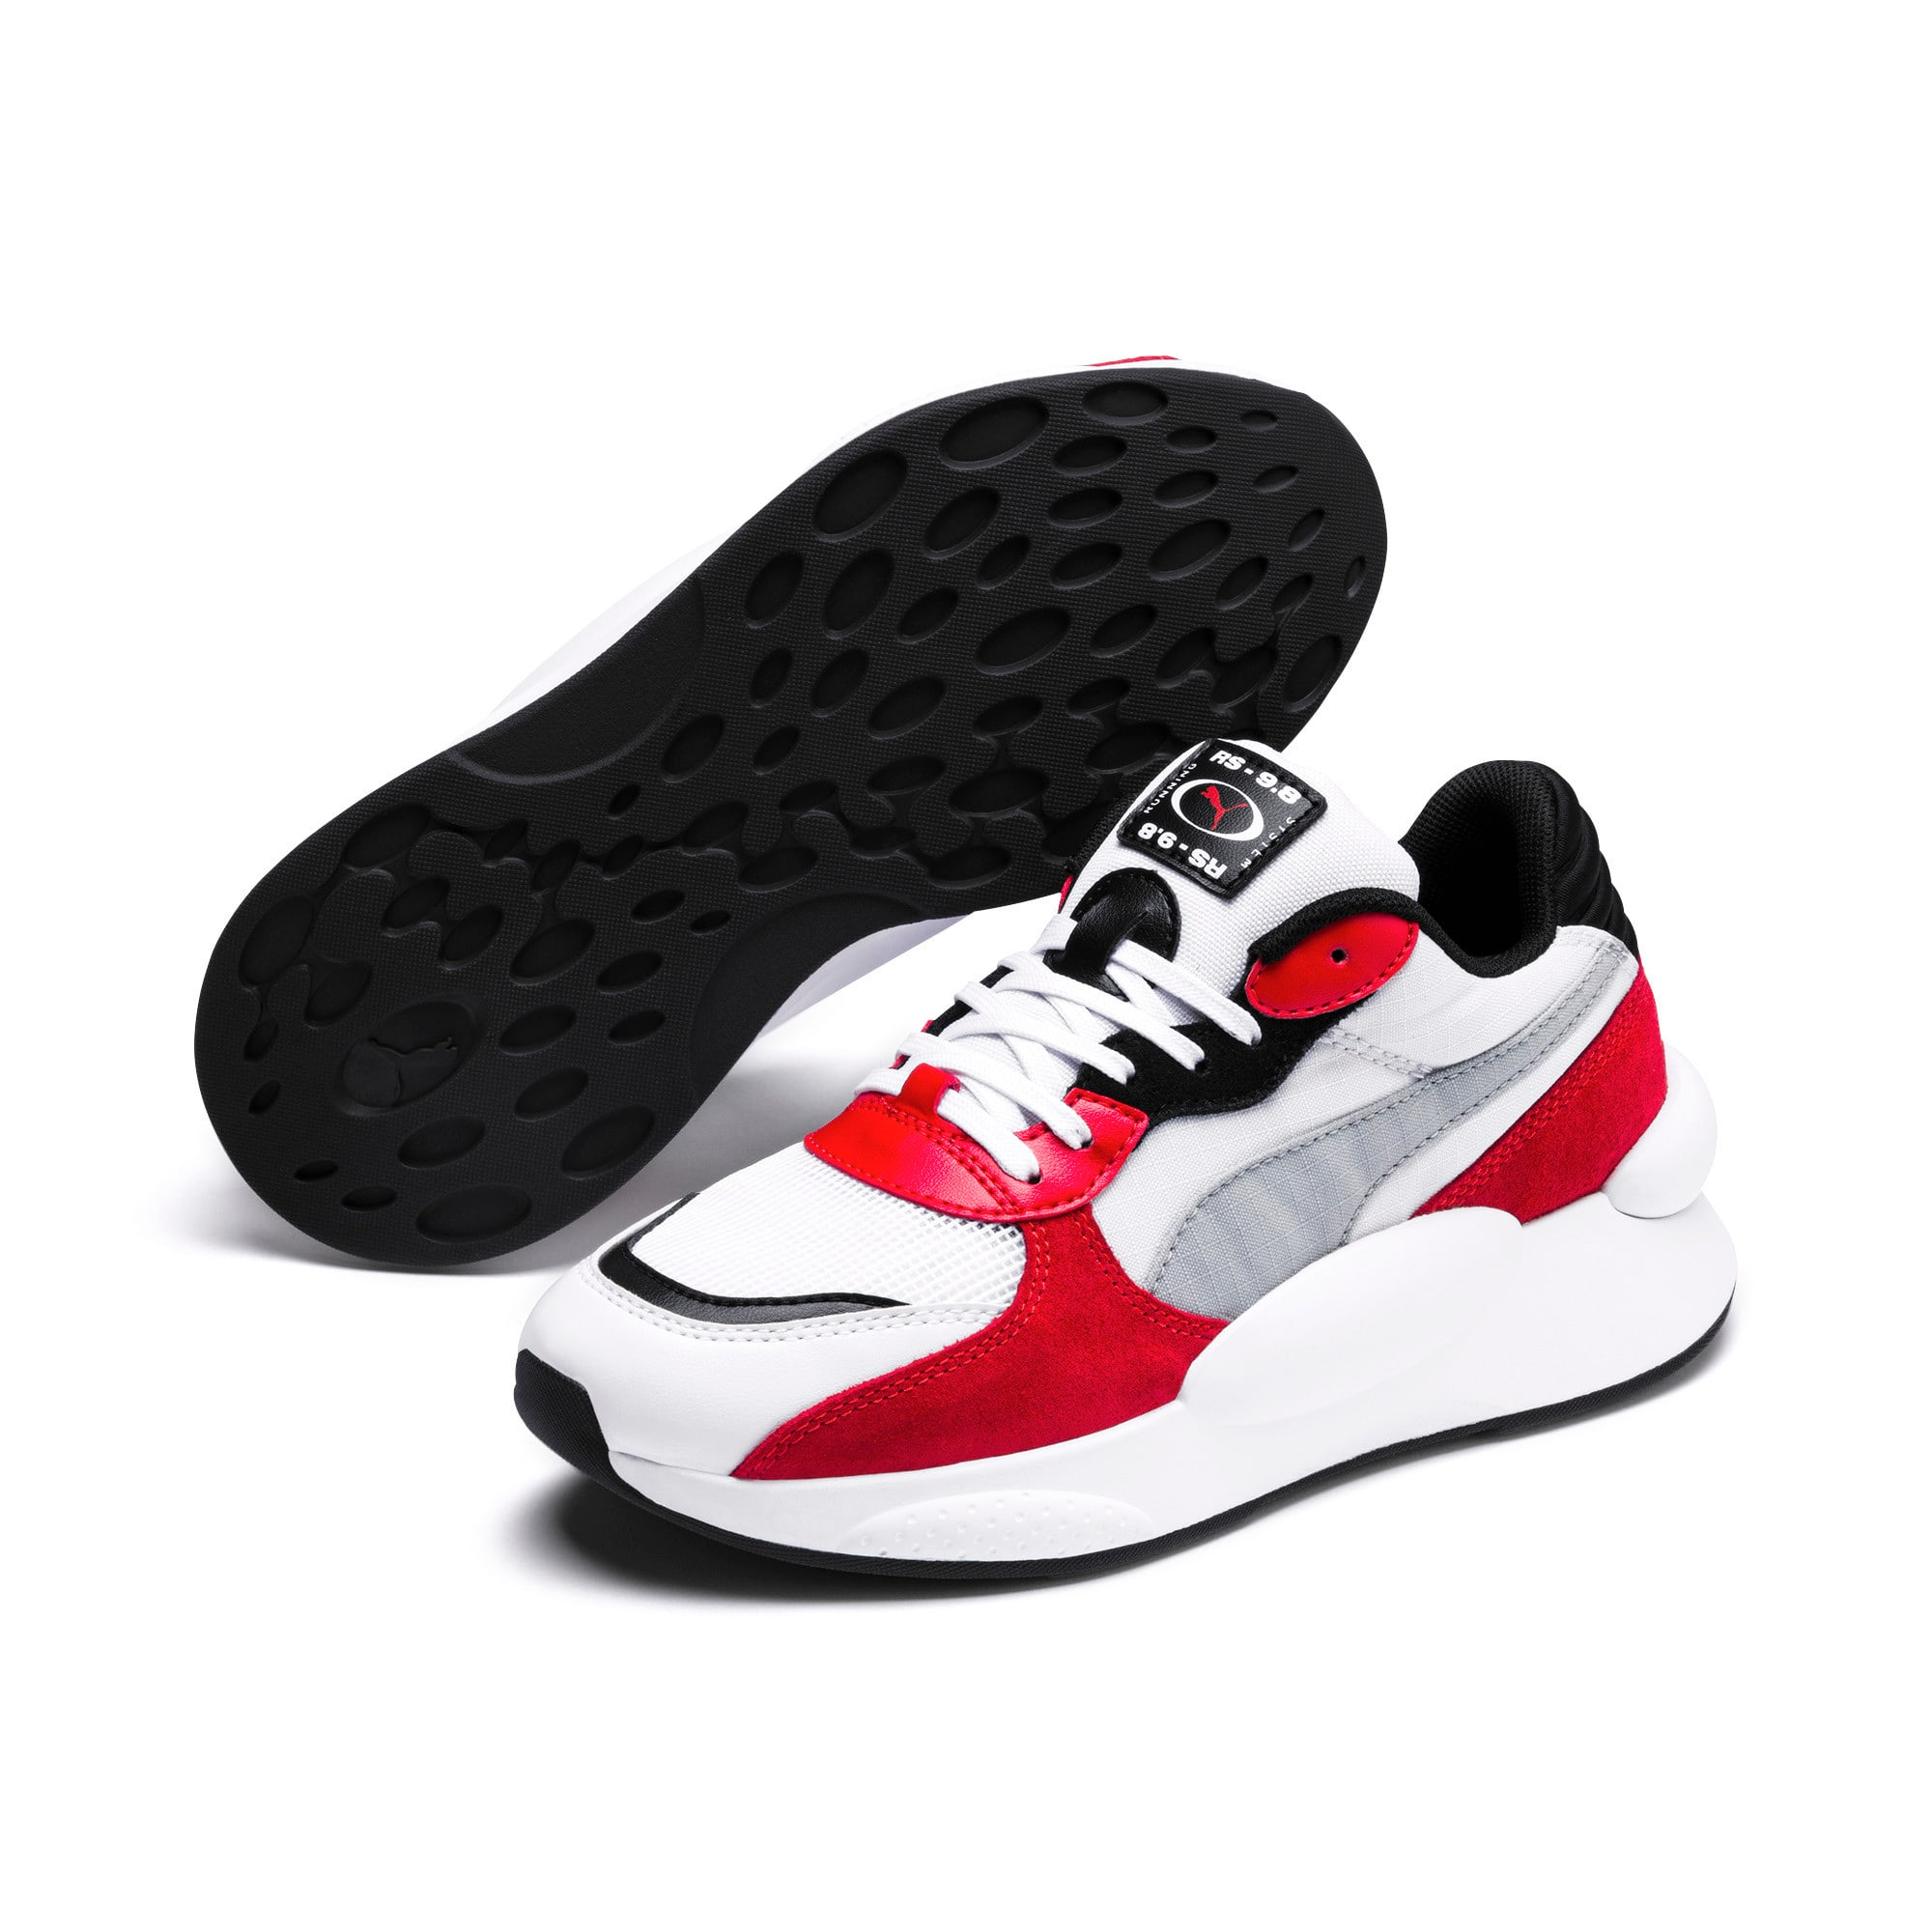 Thumbnail 2 of RS 9.8 Space Youth Trainers, Puma White-High Risk Red, medium